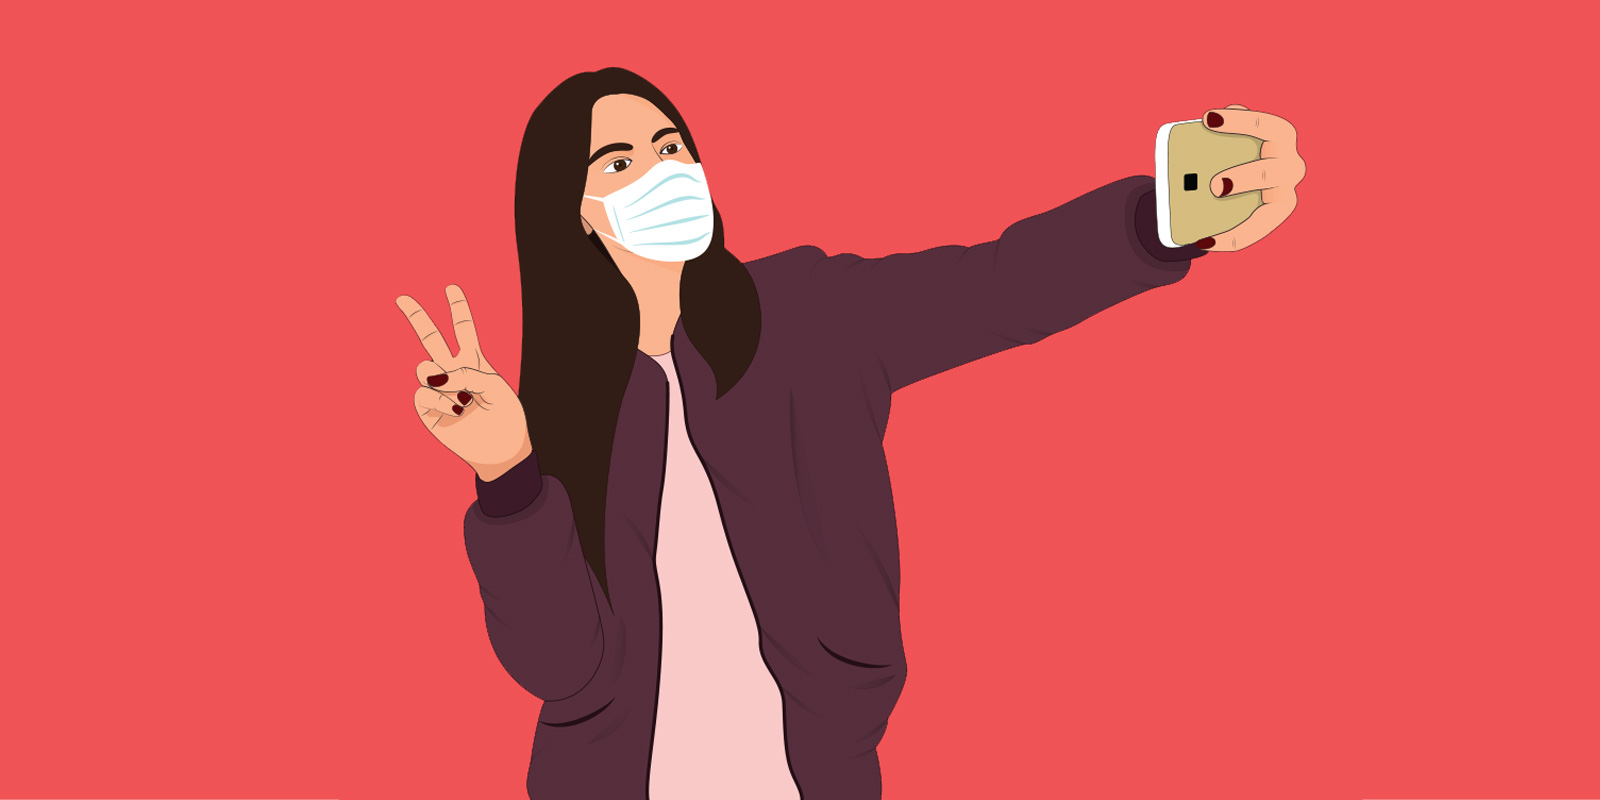 Animated girl taking a selfie